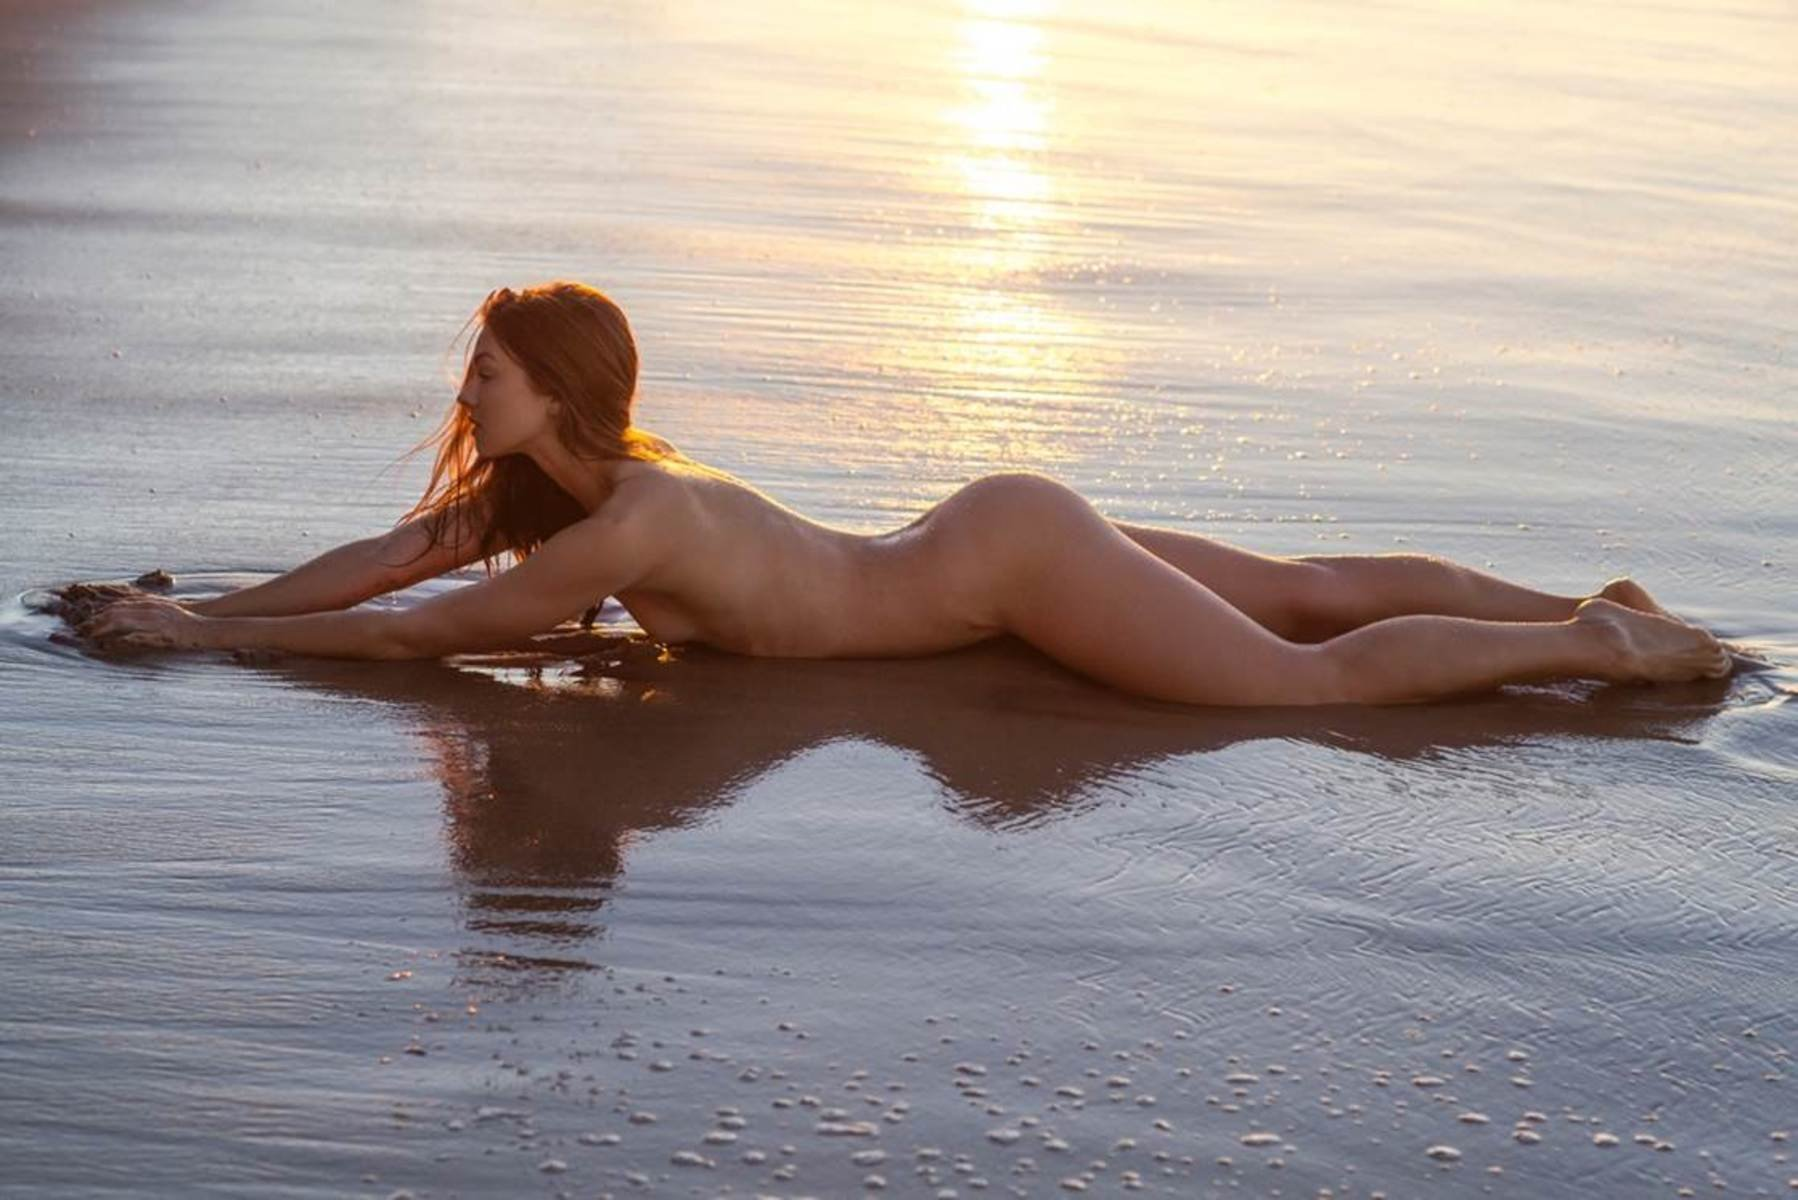 Nude Photoset of Camille Rowe. 2018-2019 celebrityes photos leaks! pics